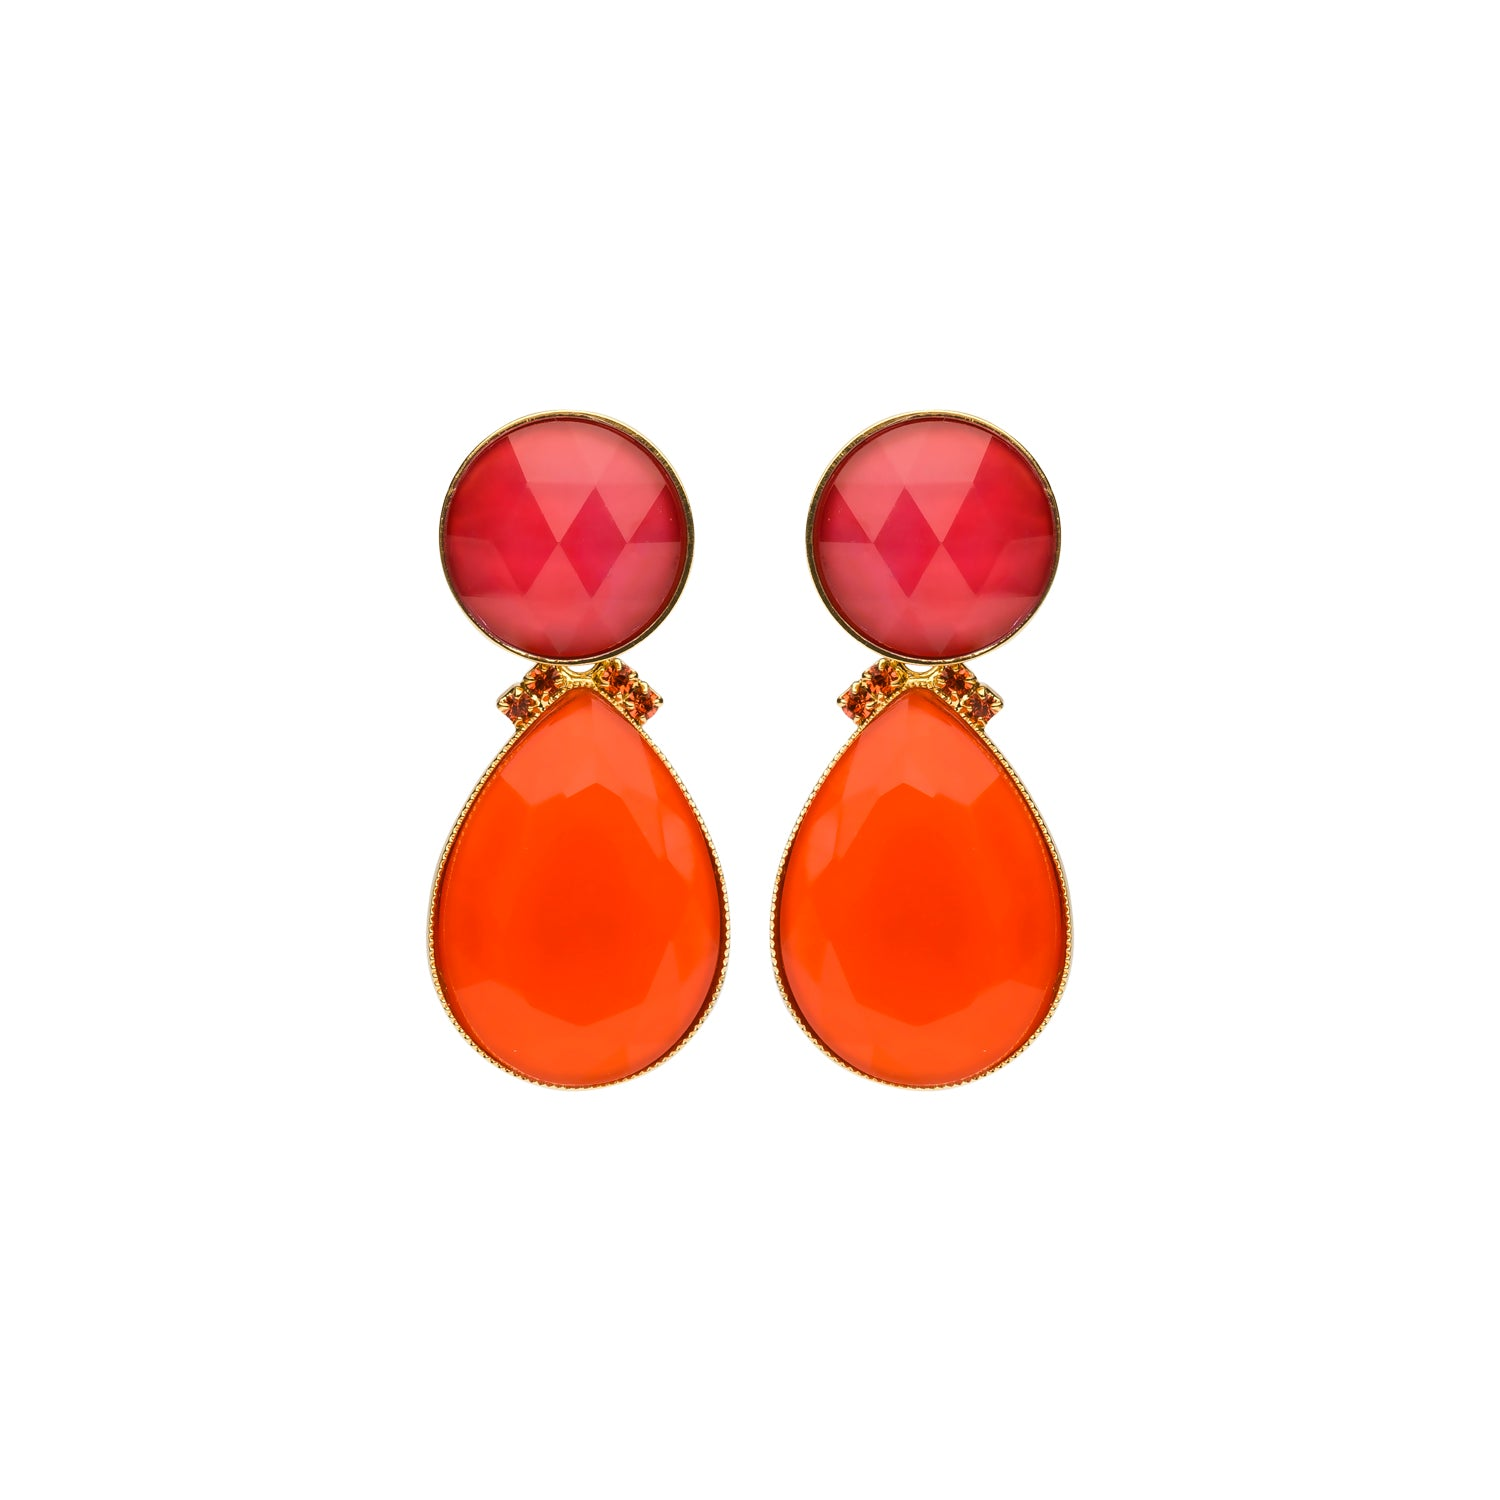 2 drops earring coral